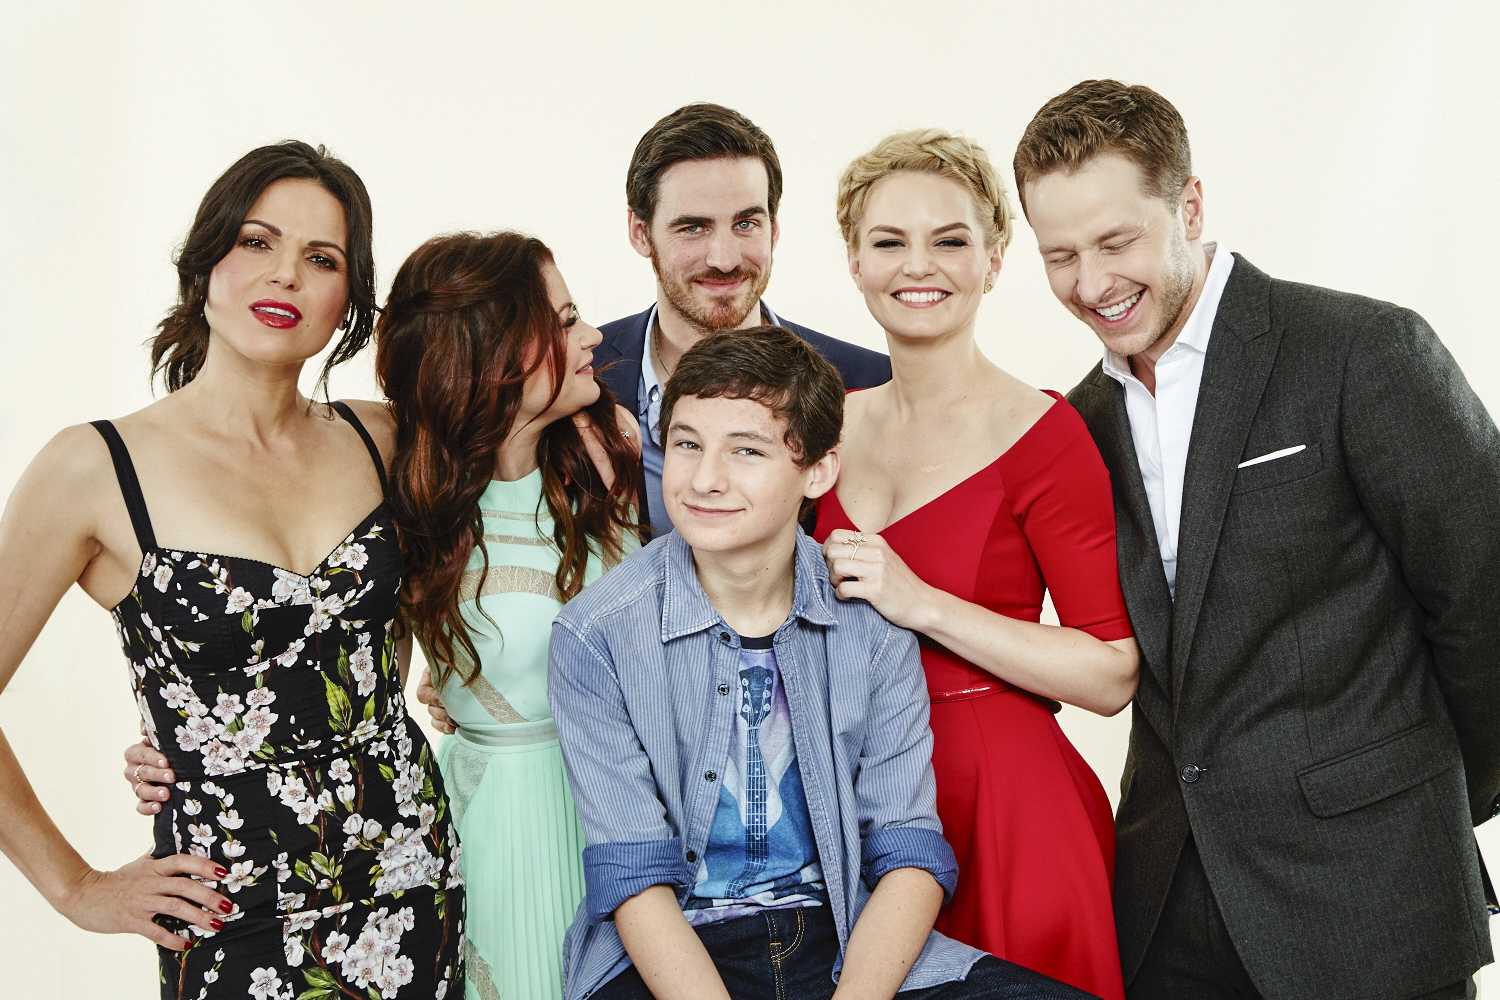 TVG_CC14_Once_Upon_A_Time_154